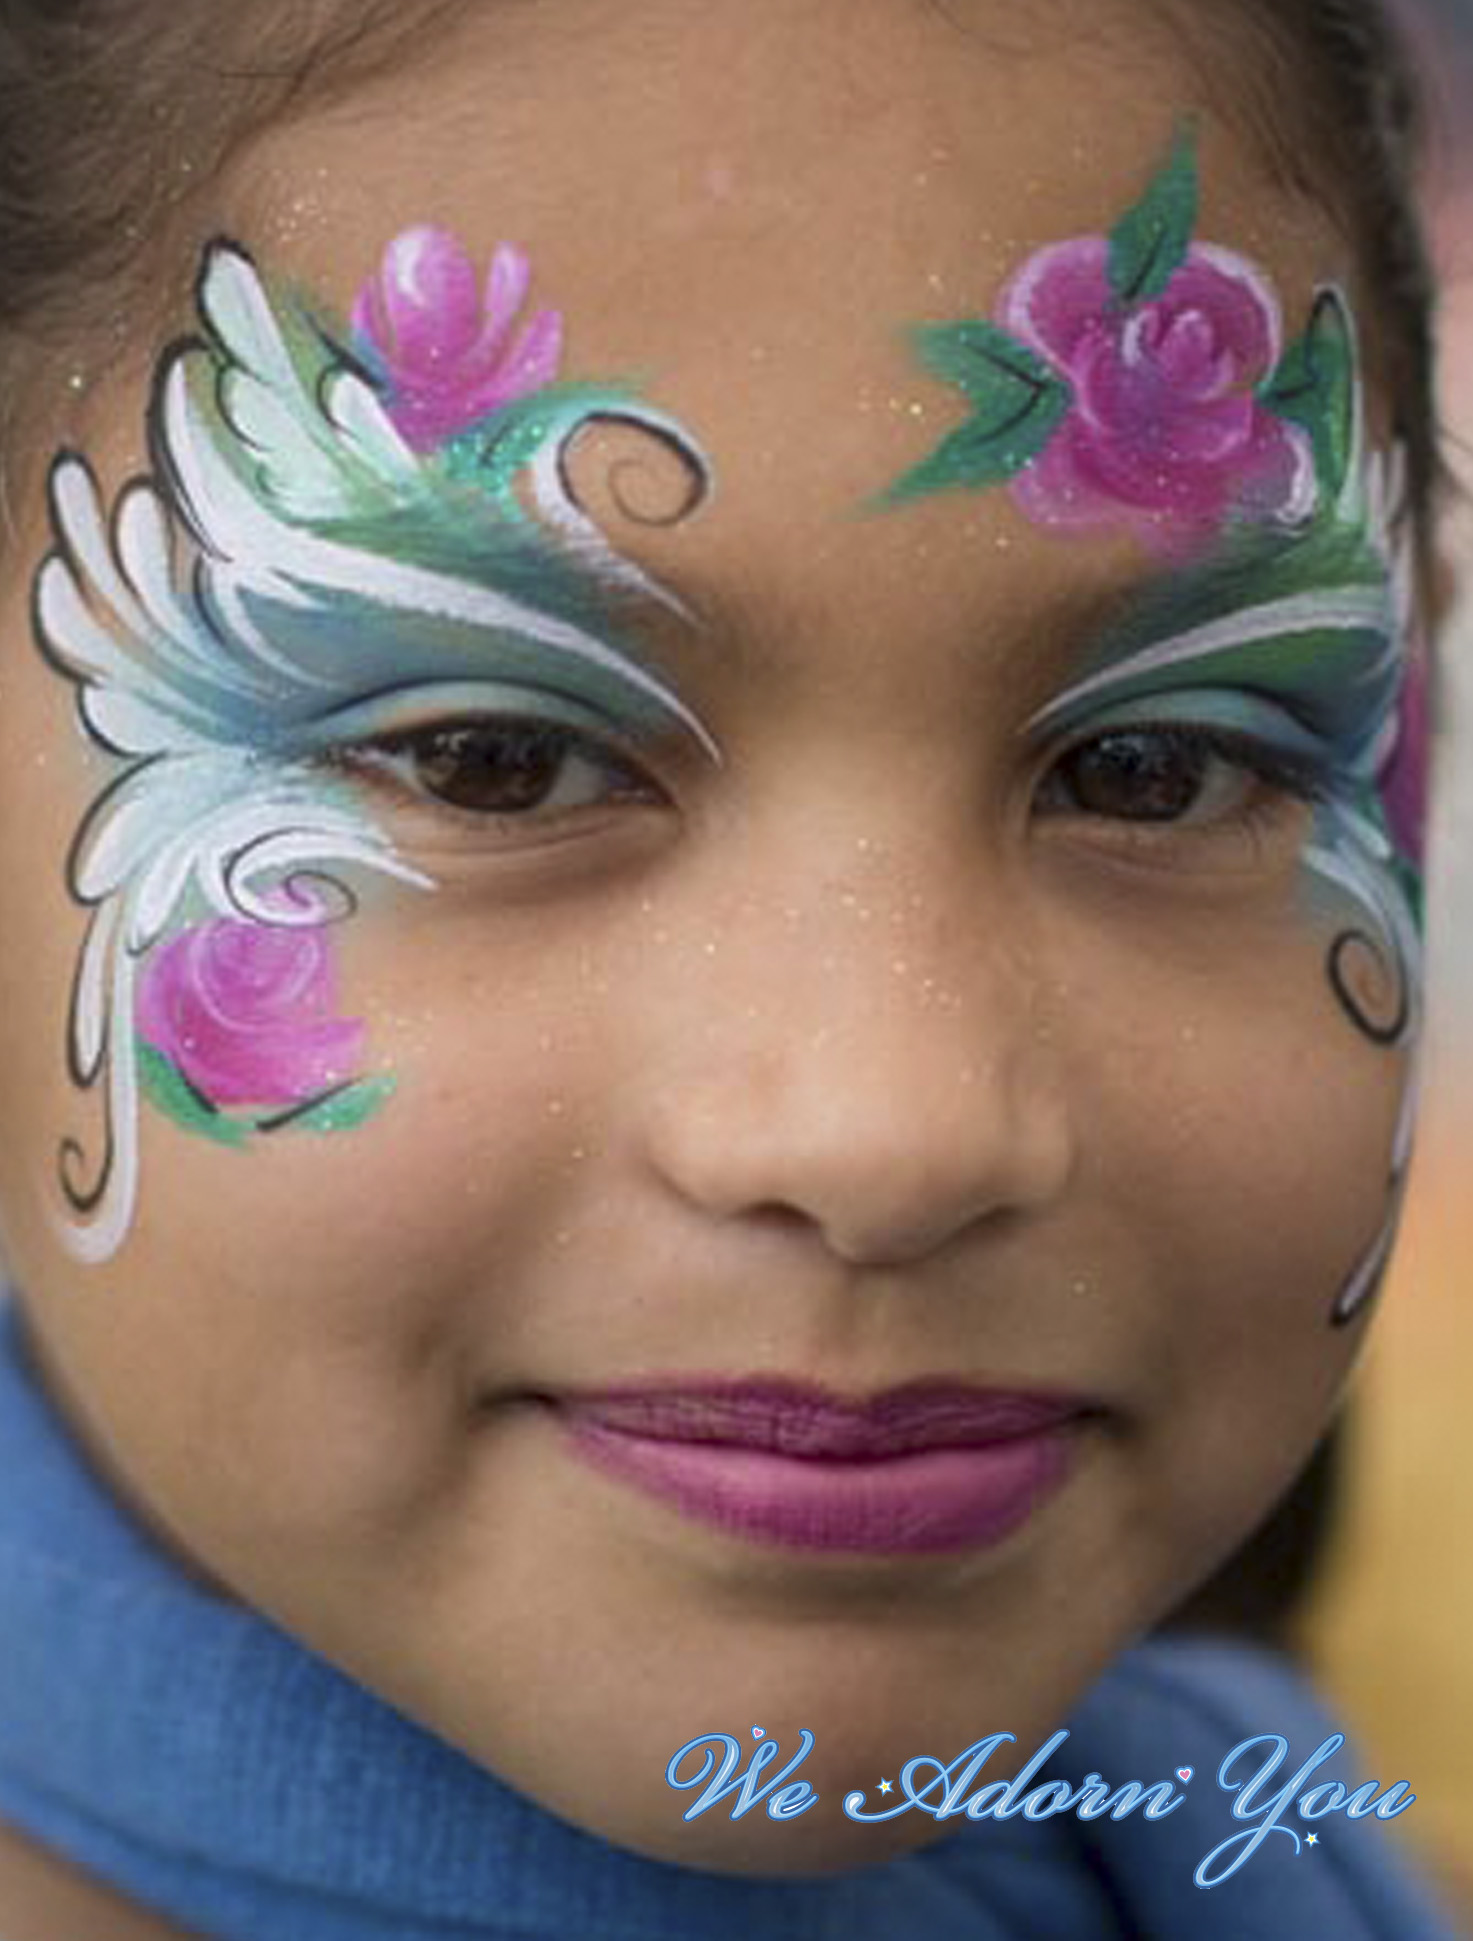 Face Painting Roses- We Adorn You.jpg